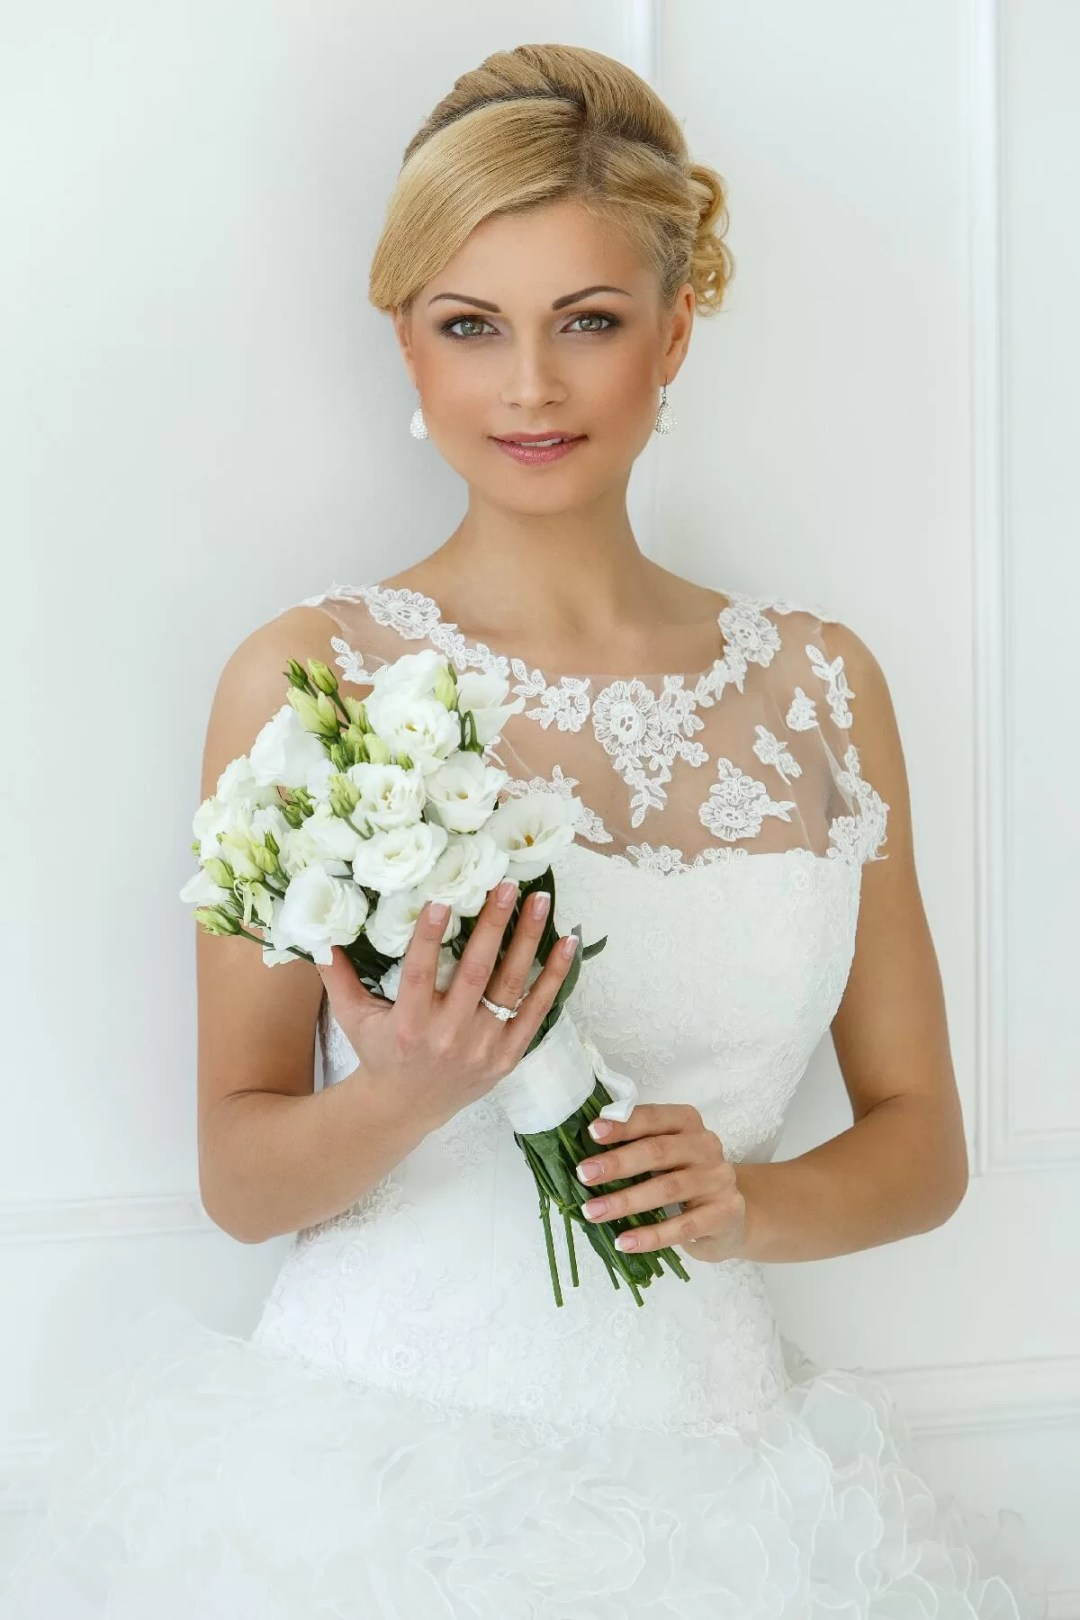 Beautiful Wedding Makeup Ideas With A Contoured Look with Blush